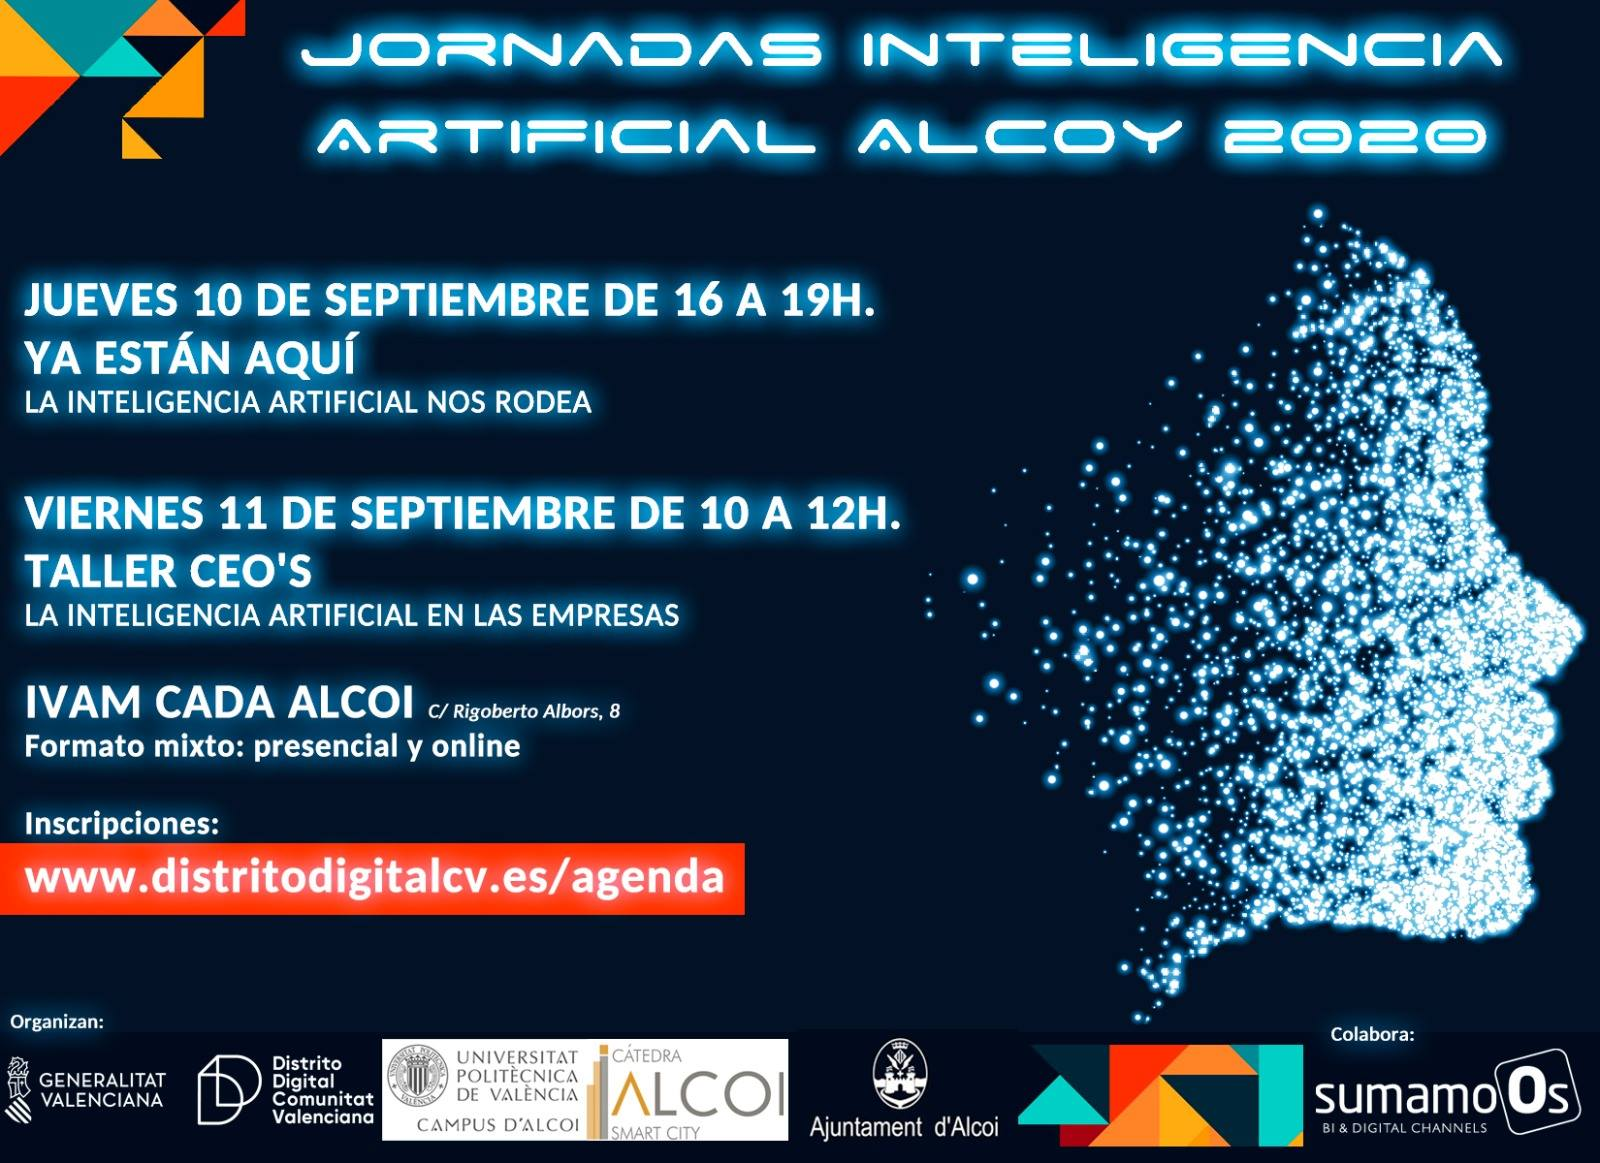 JORNADA INTELIGENCIA ARTIFICIAL ALCOI